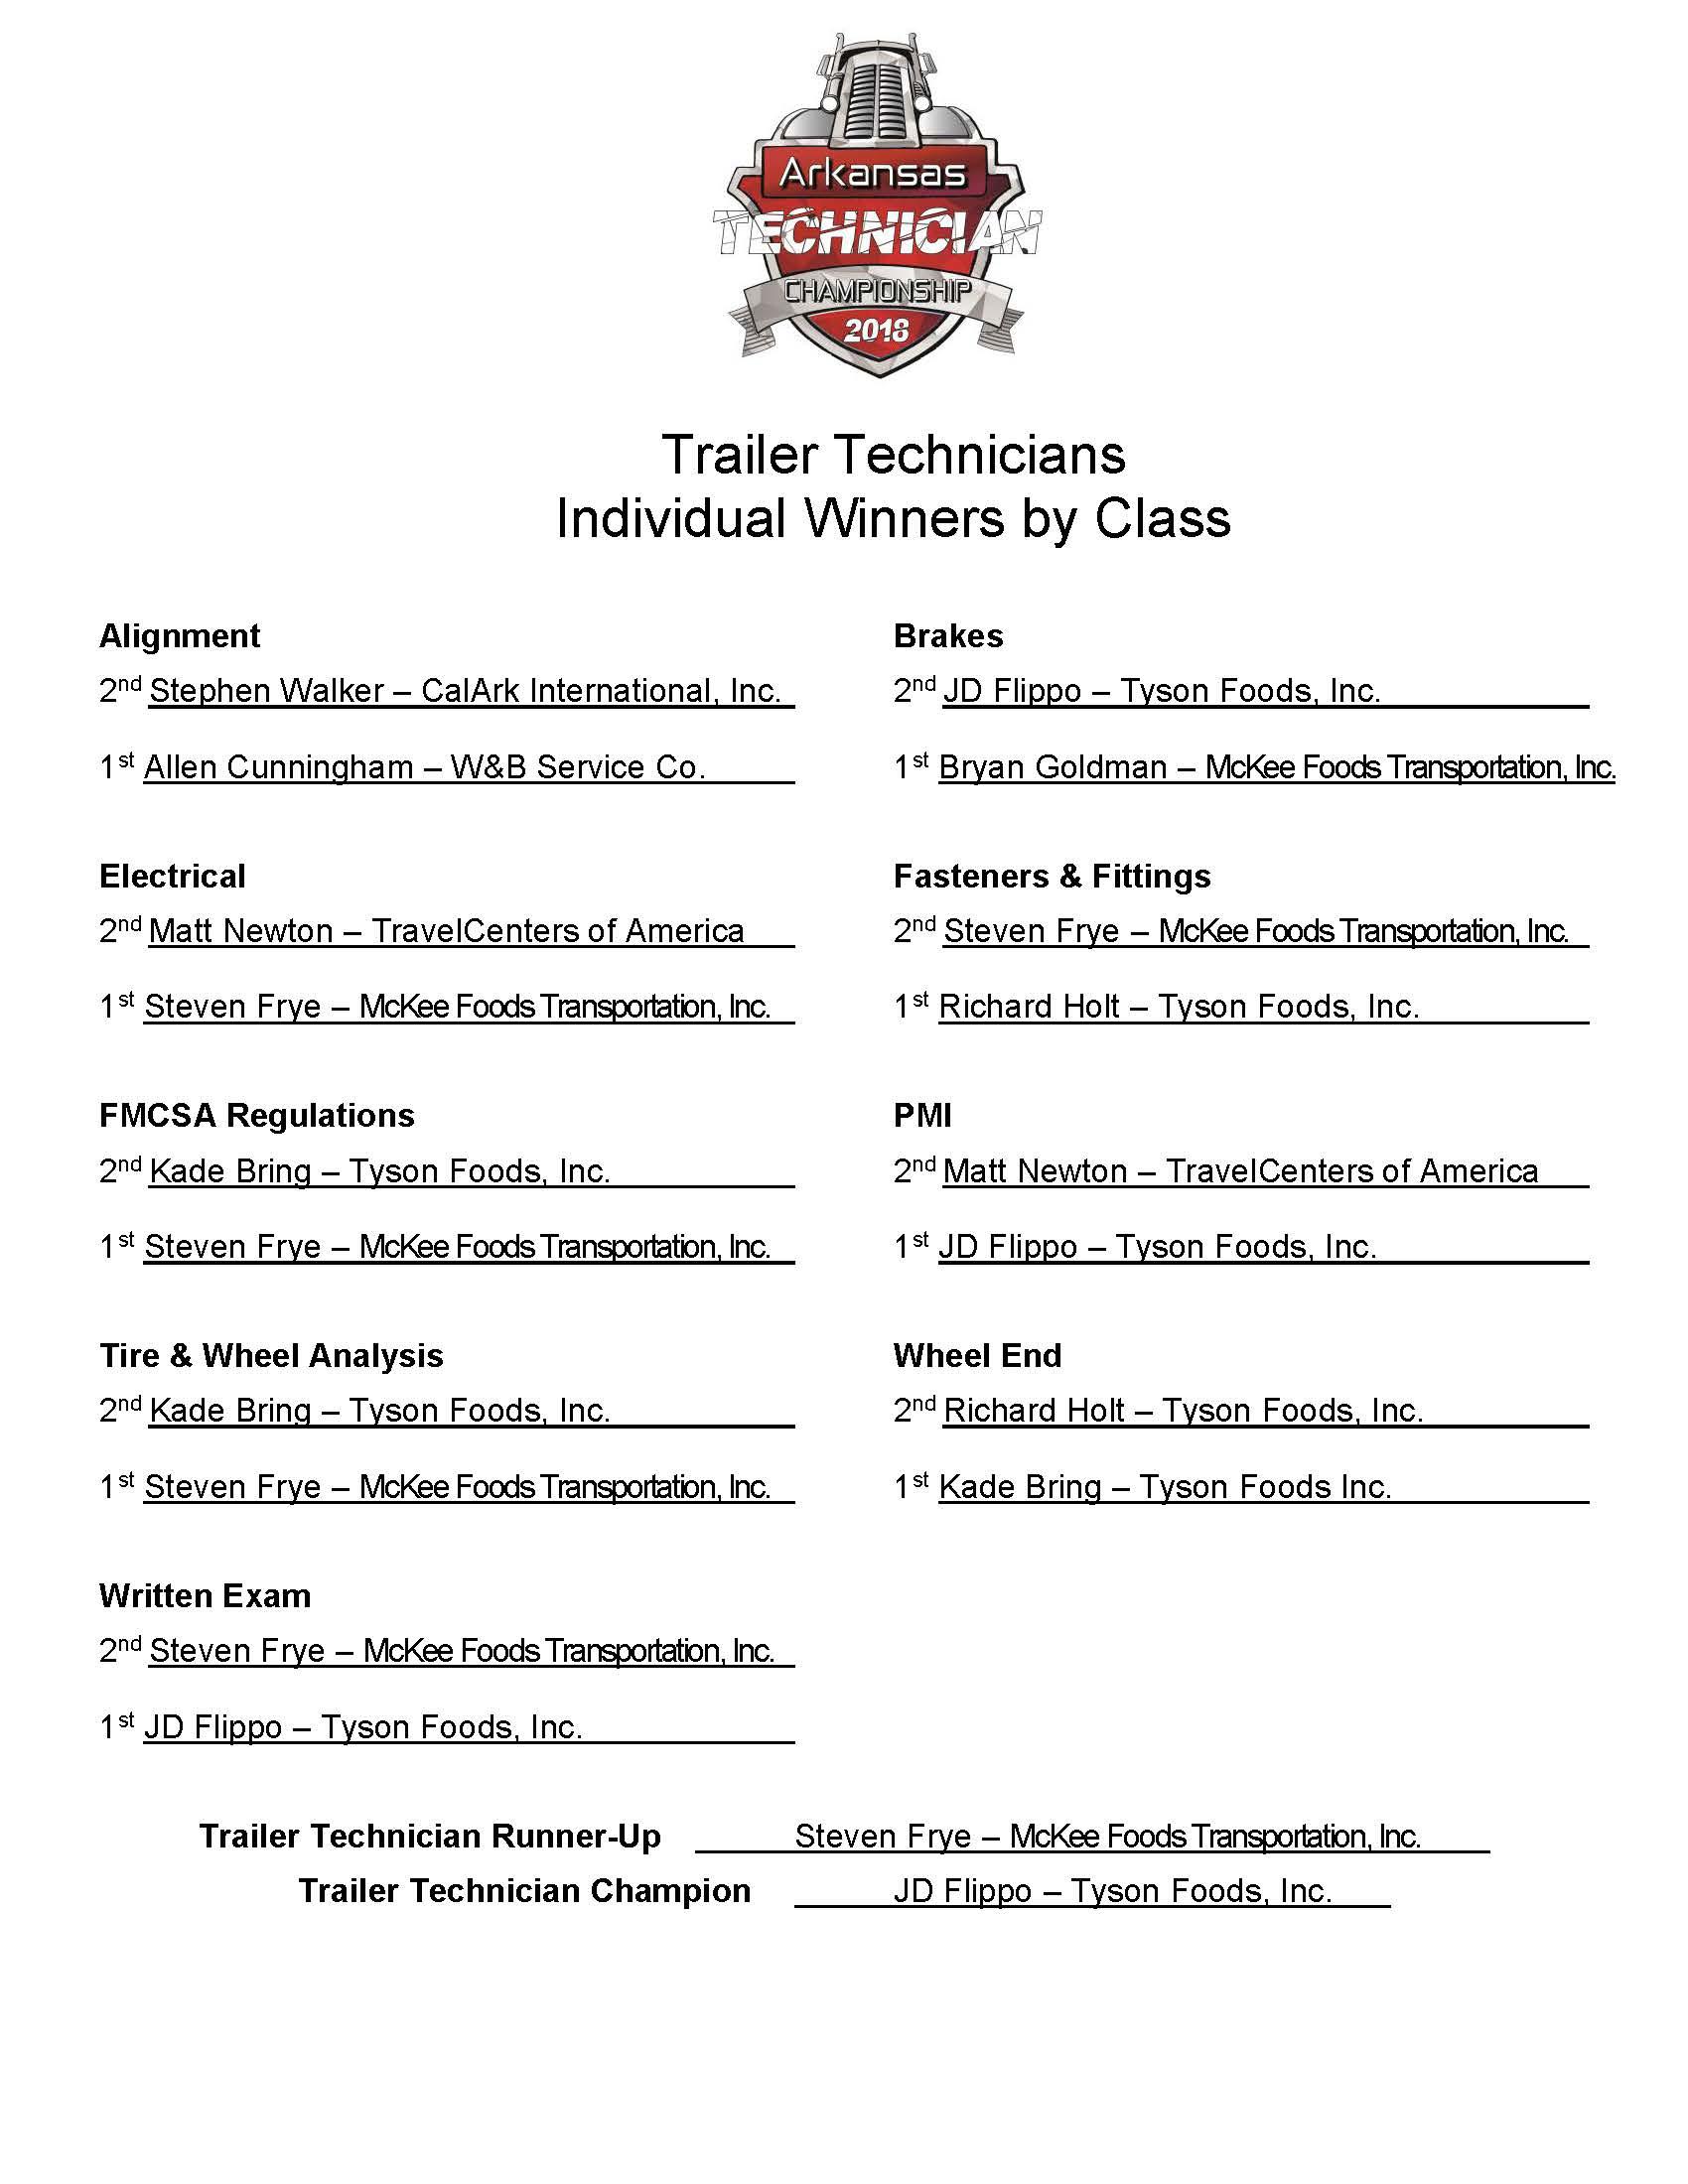 2018 Tech Awards Page 1